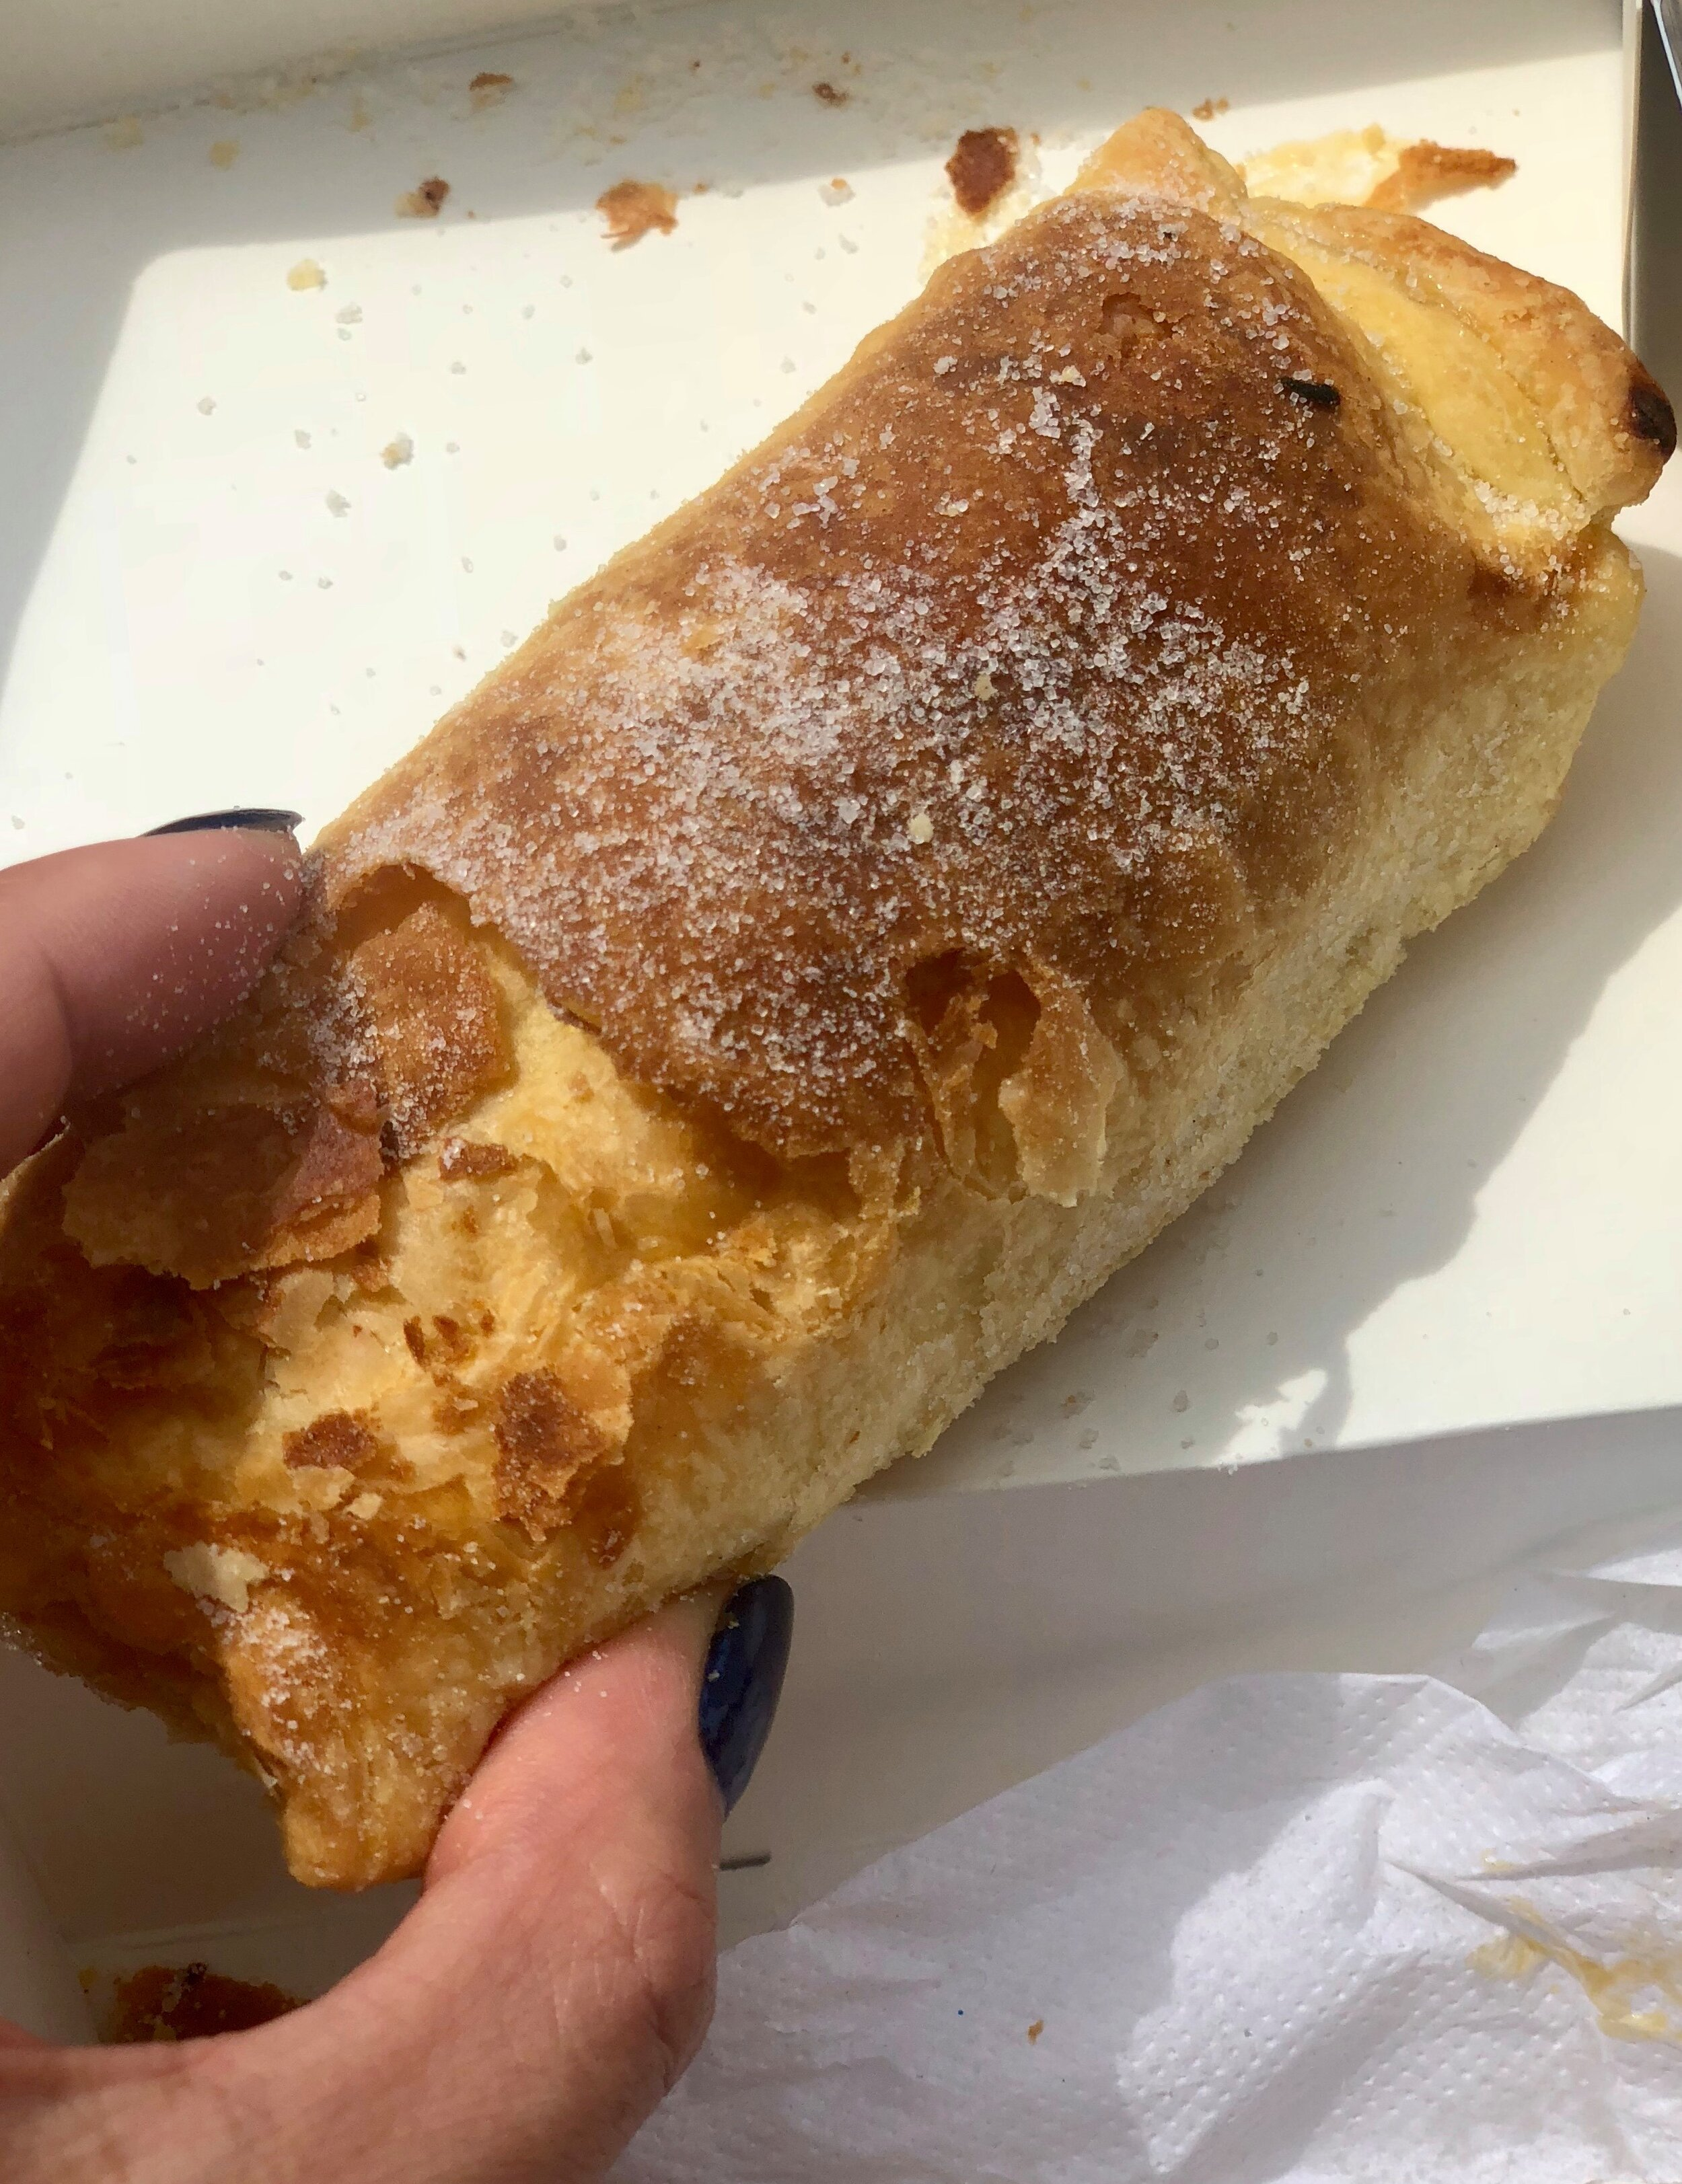 Travesseiros of Piriquita… - …is the must-try pastry here. Made on-site, this flaky, almond cream filled pastry is what Piriquita, and the town, is known for in similar fashion to the Pasteis de Belem